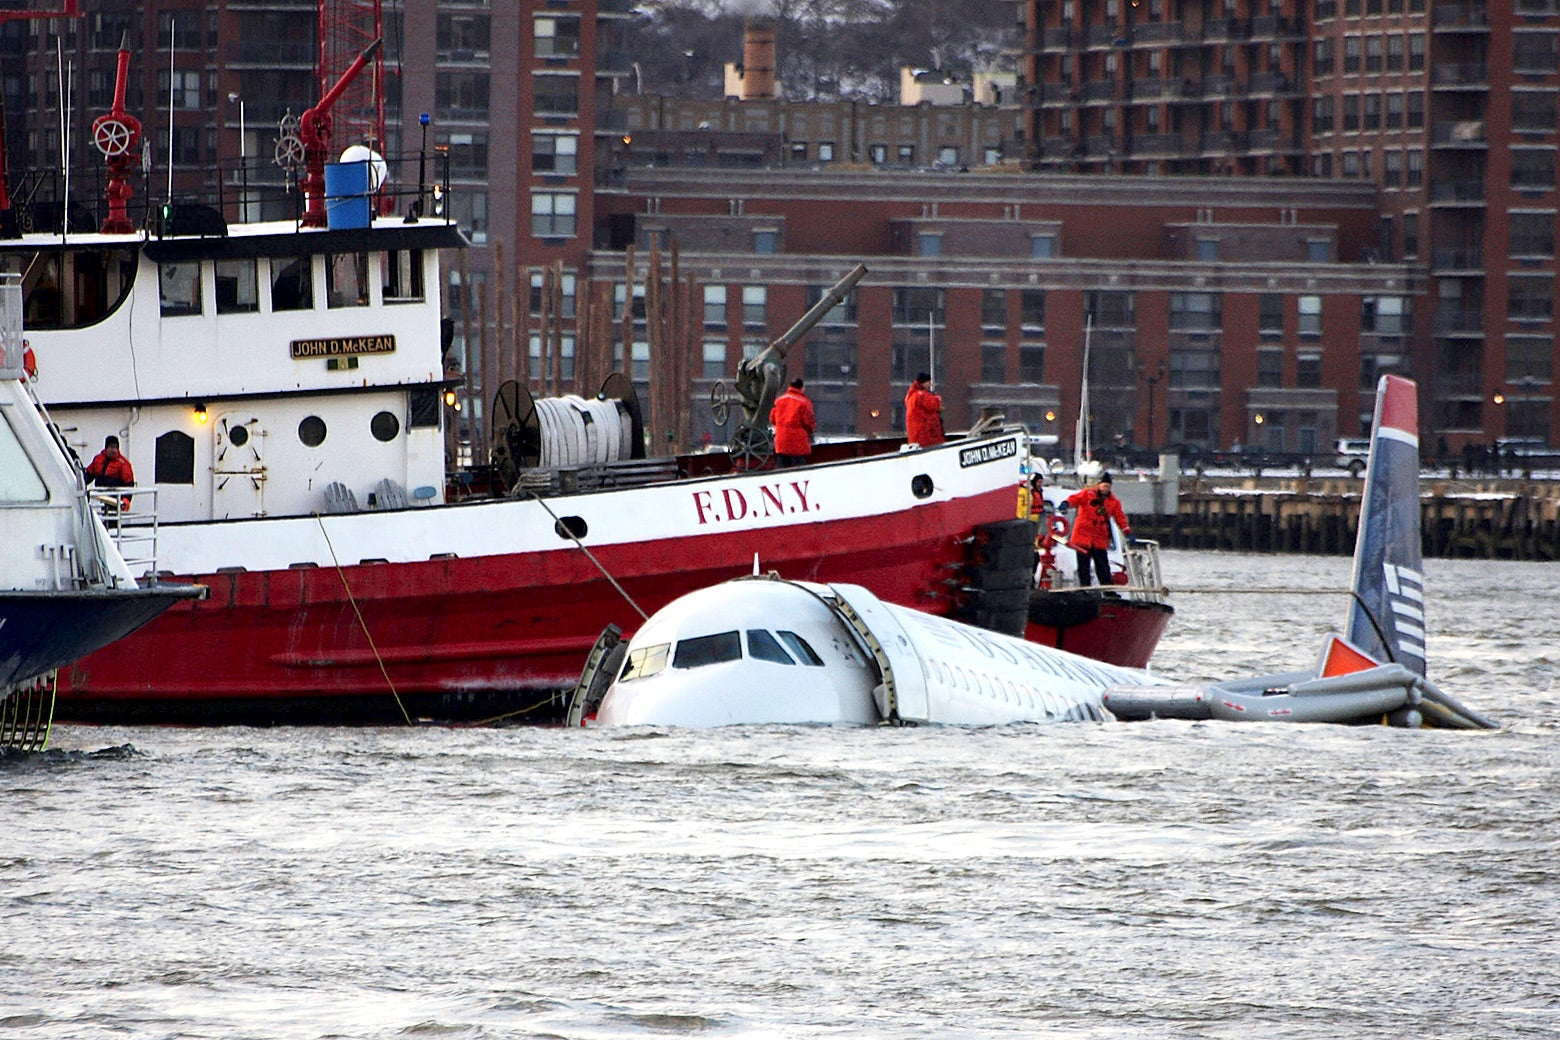 A New York City Fire Department boat floats next to partially submerged plane in the Hudson River.